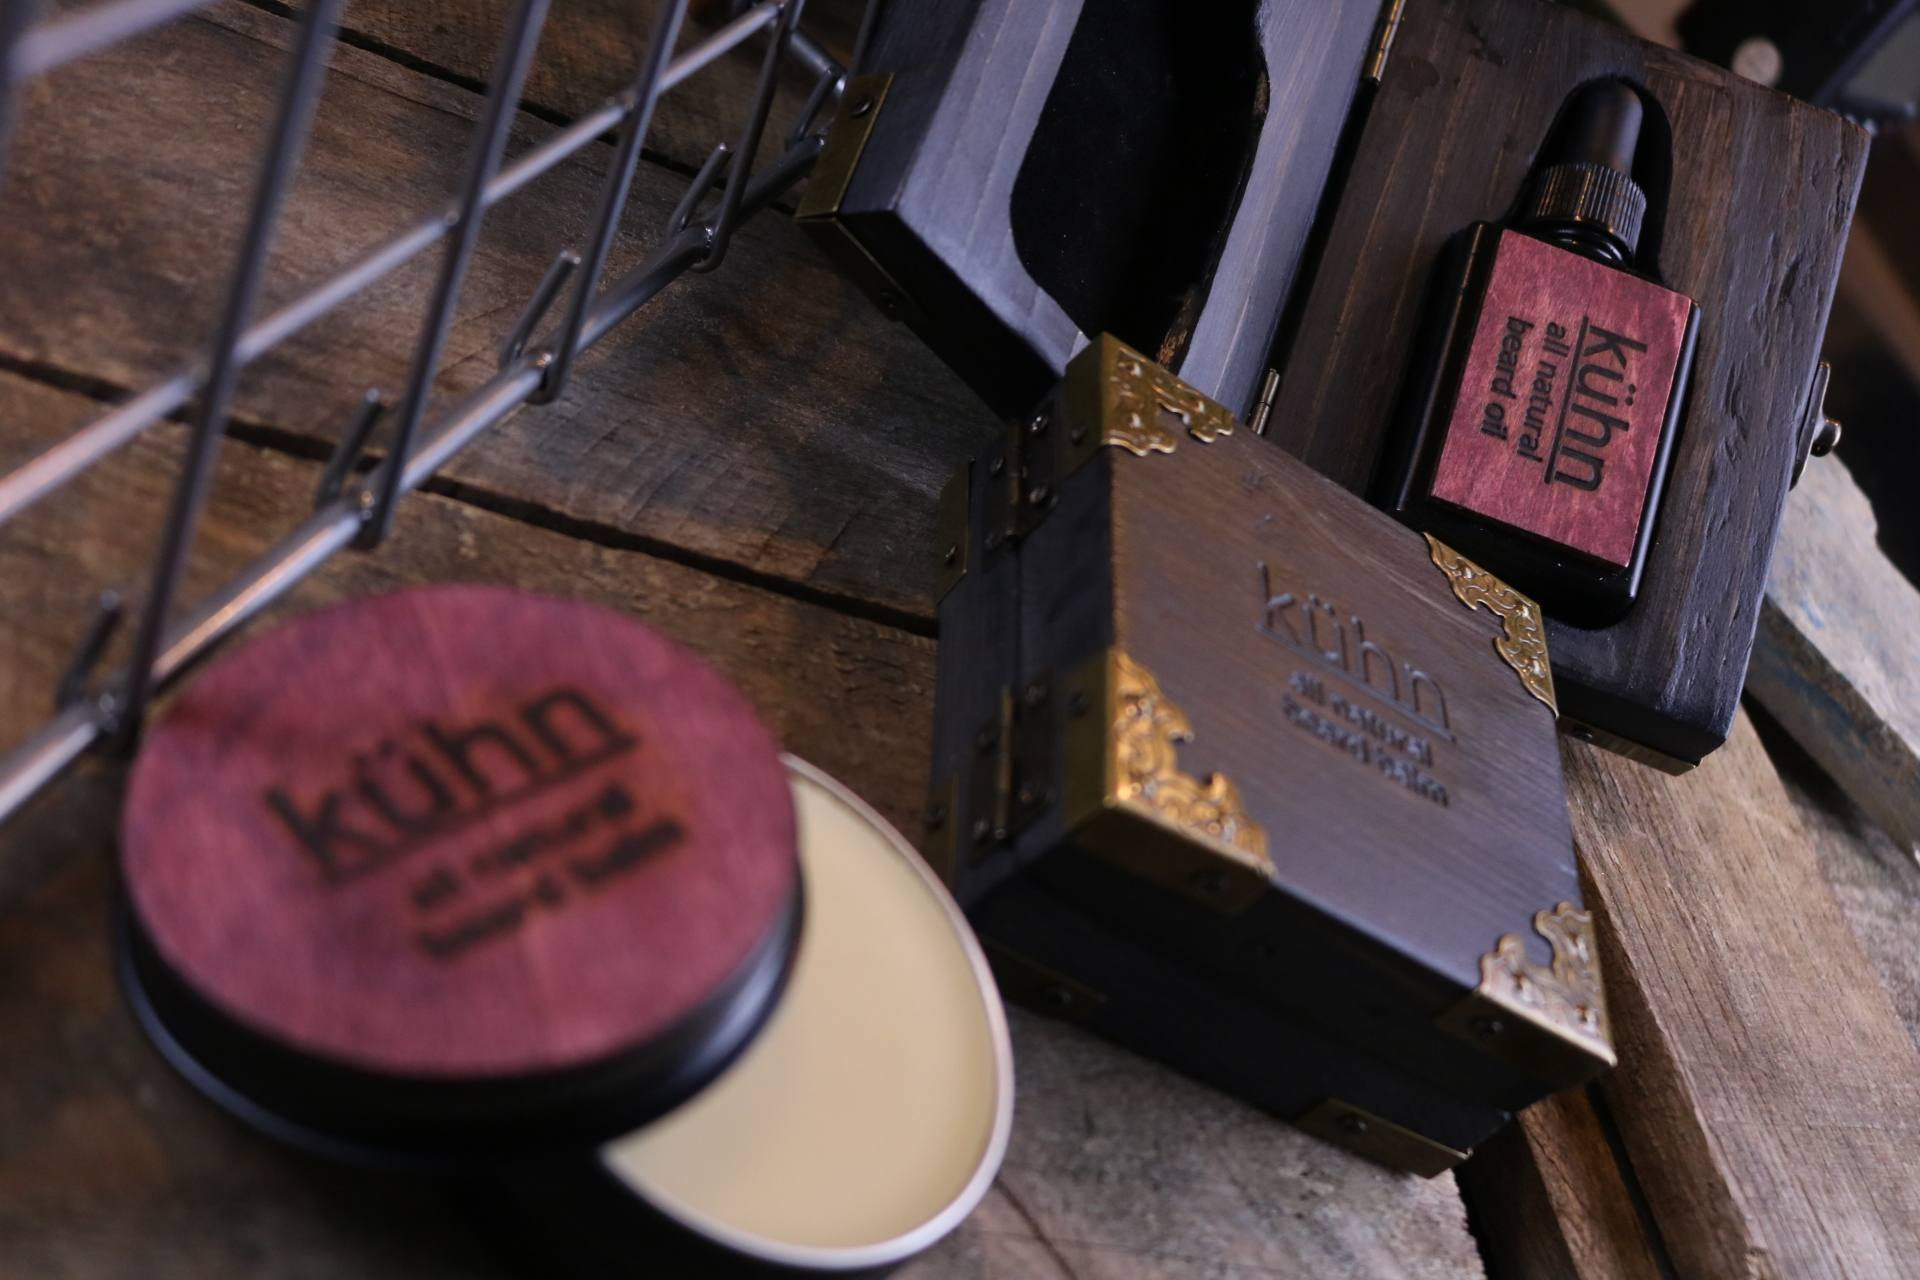 beard balm from kuhn products contains all natural shea butter mango butter and cold pressed oils